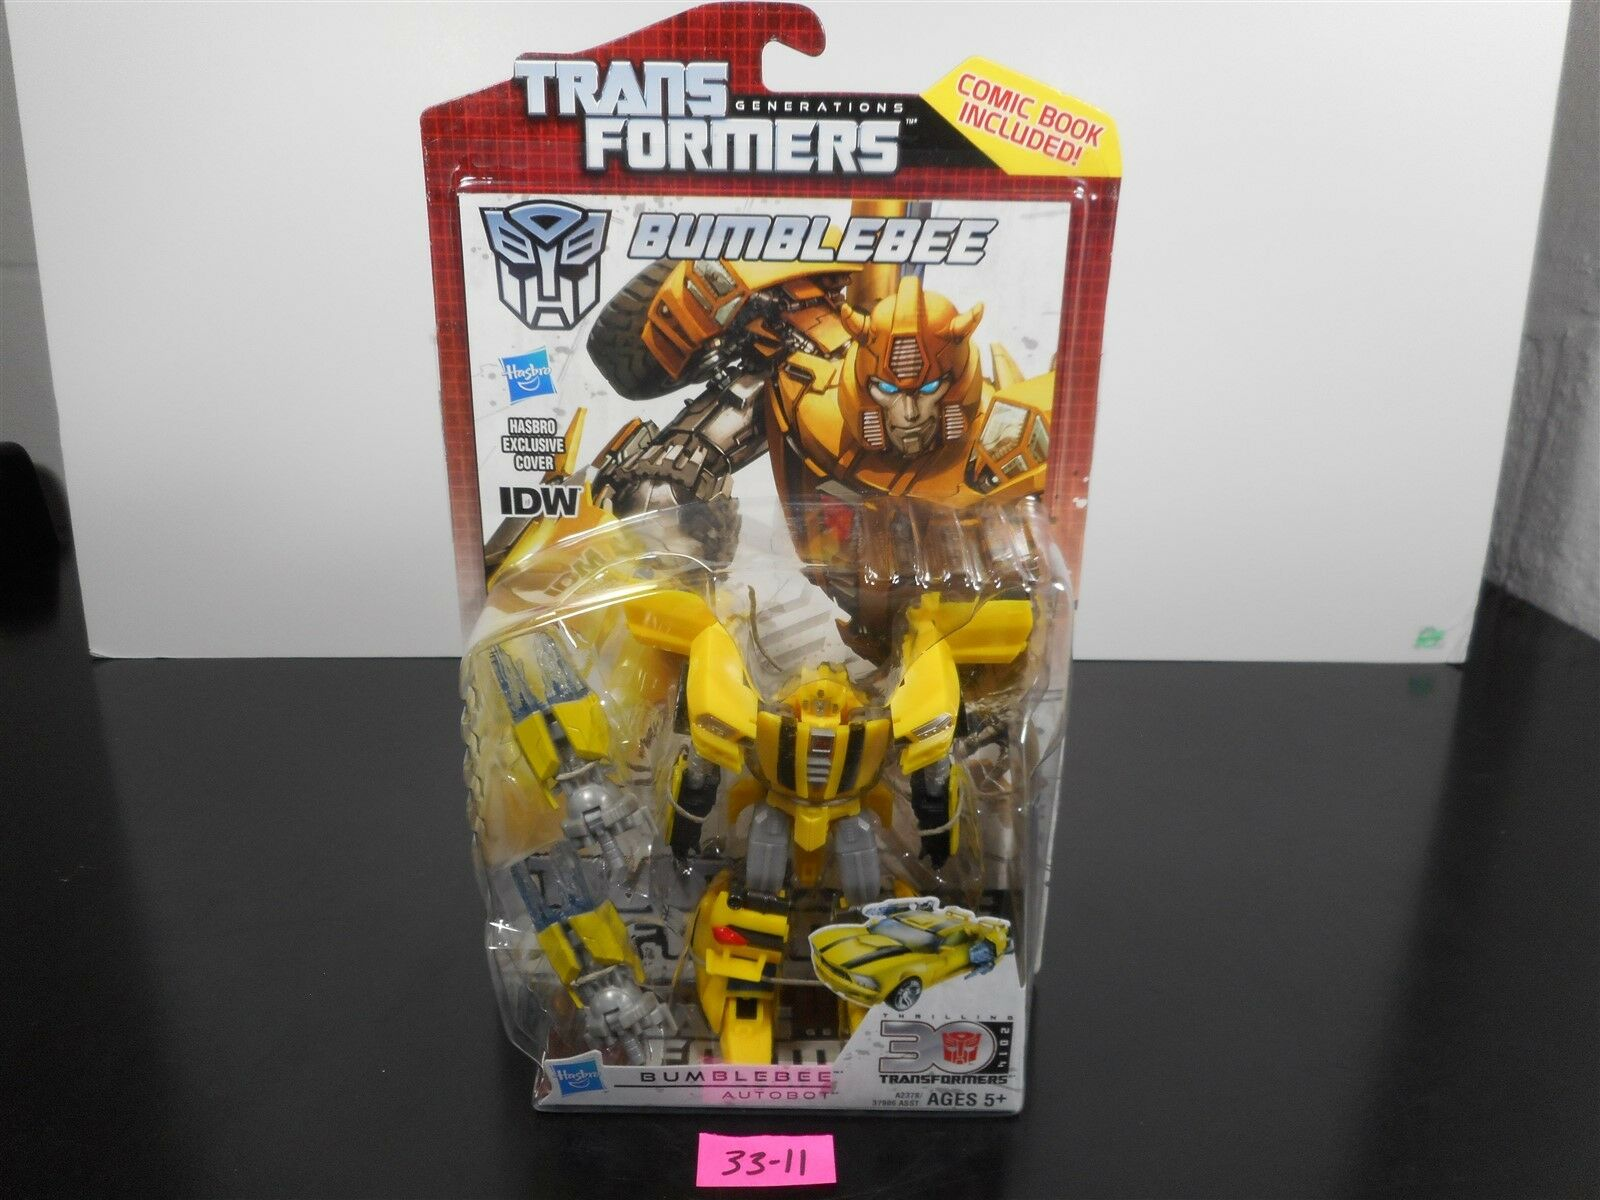 NEW & SEALED  TRANSFORMERS GENERATIONS IDW BUMBLEBEE 30TH ANNIVERSARY COMIC 3311